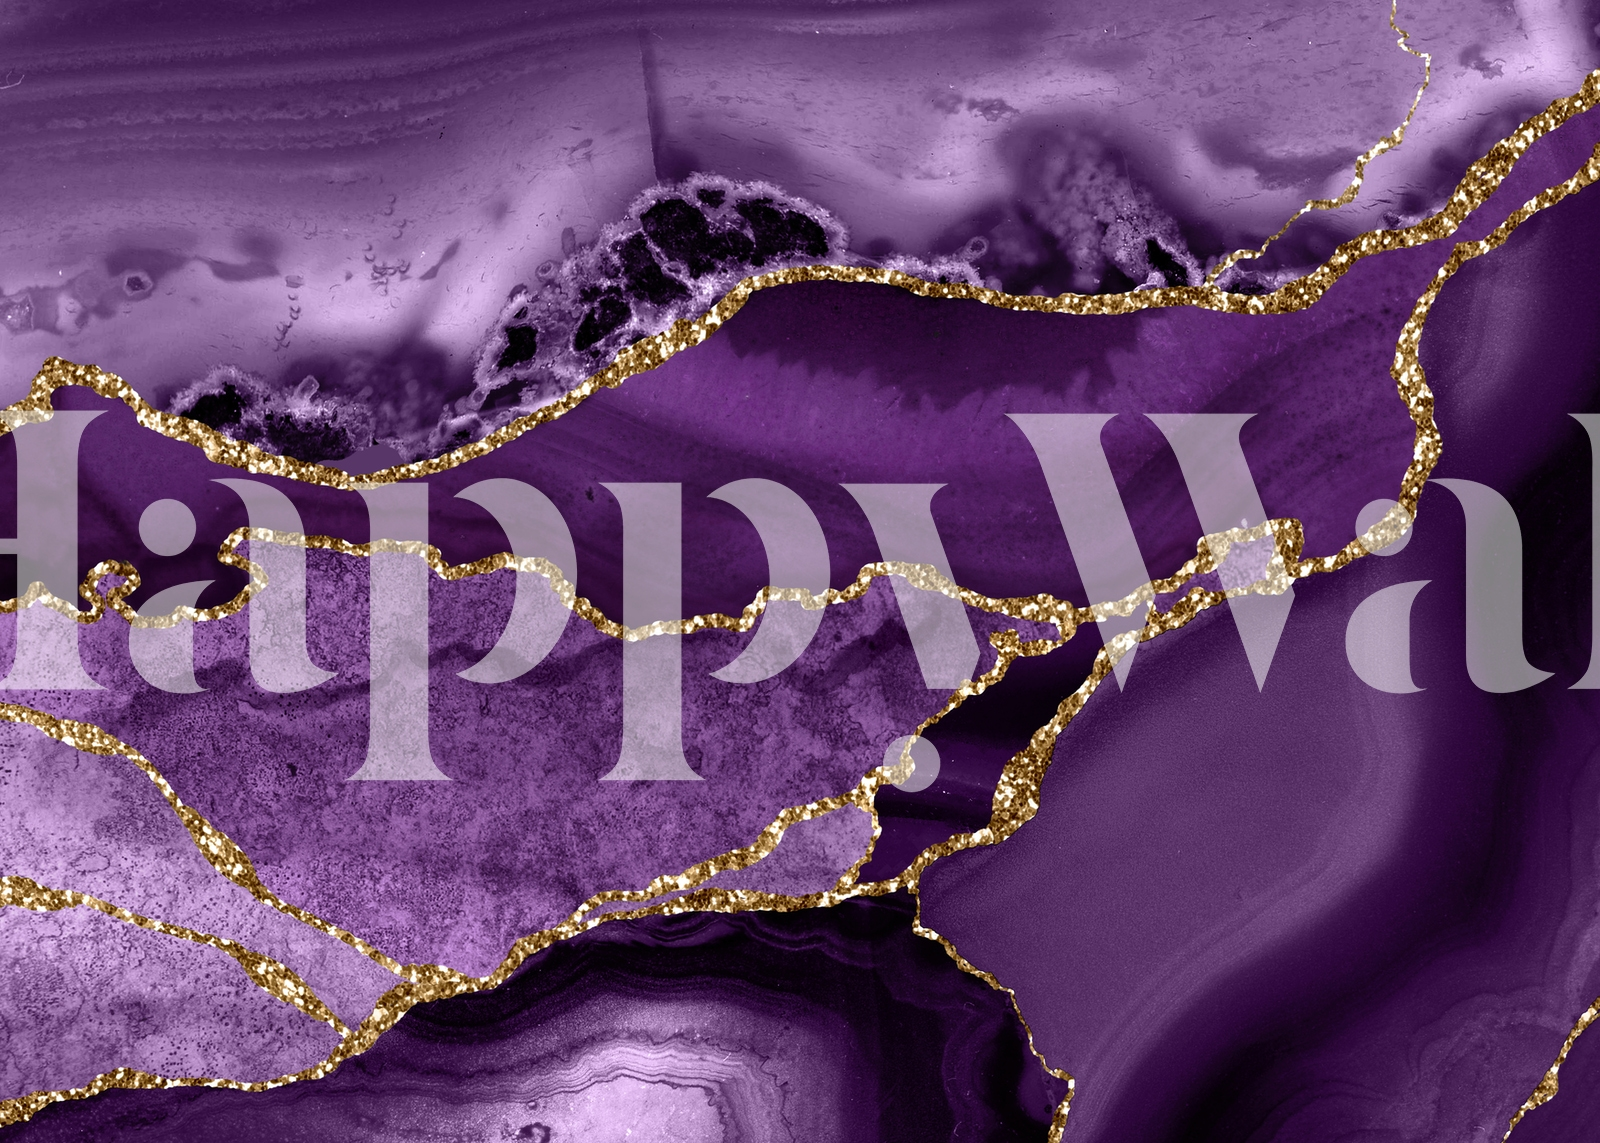 Buy Purple Gold Marble Mosaic Wallpaper Free Shipping At Happywall Co Uk